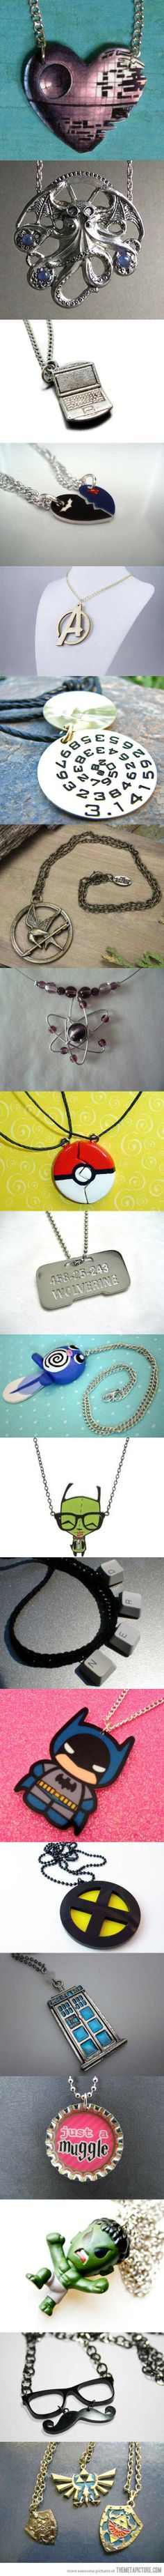 A collection of 20 cool and creative necklaces for geeks…